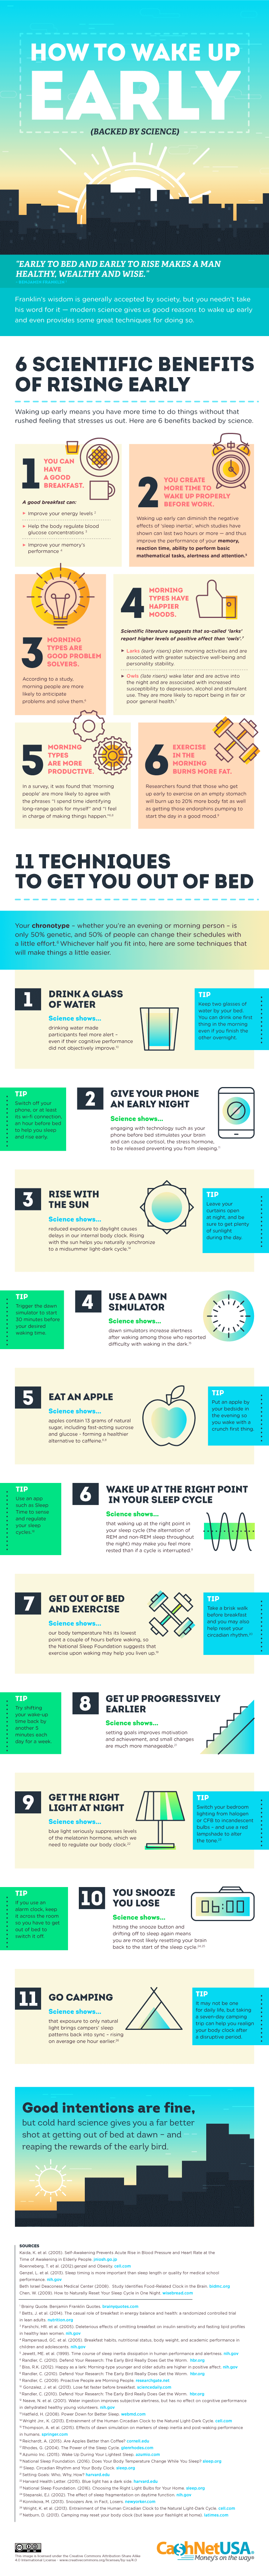 wake up early infographic